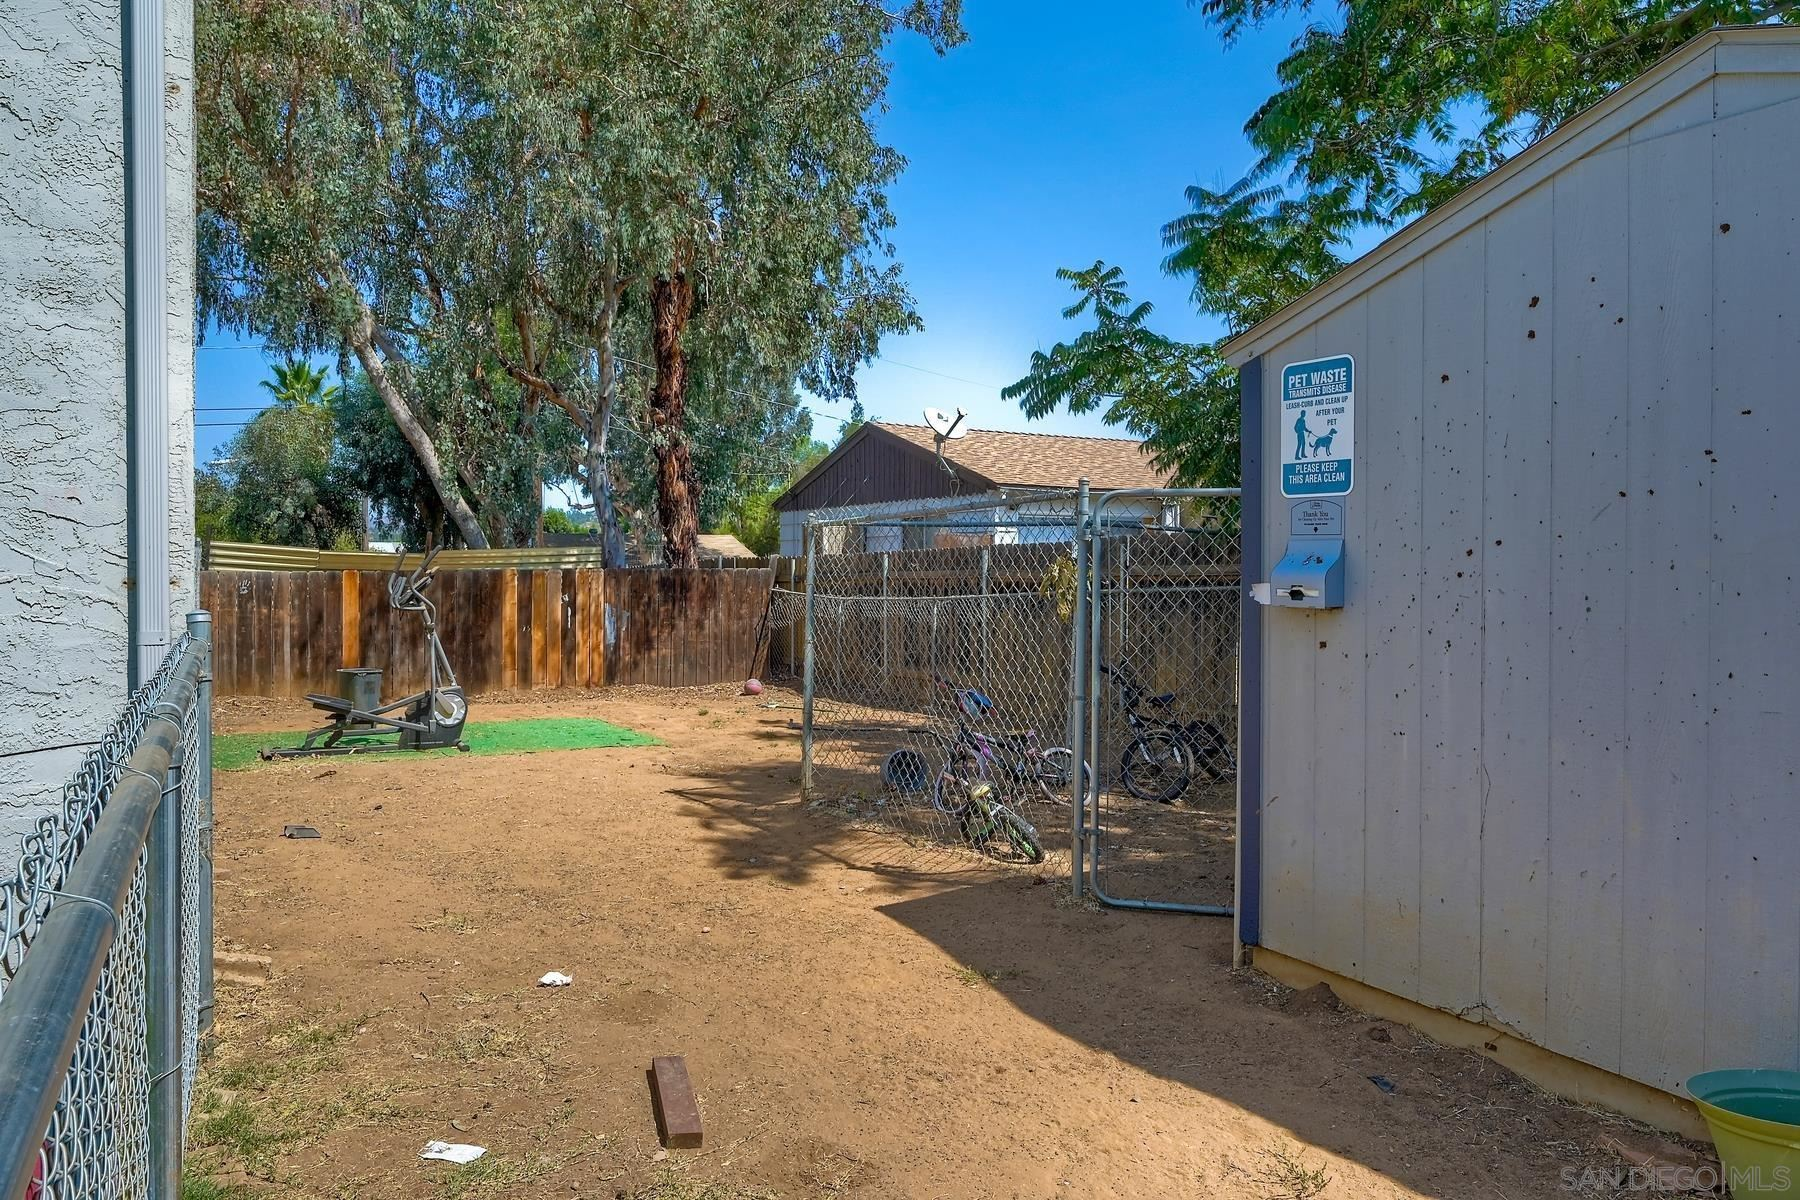 Photo of 9719 Riverview Ave, Lakeside, CA 92040 (MLS # 210026315)